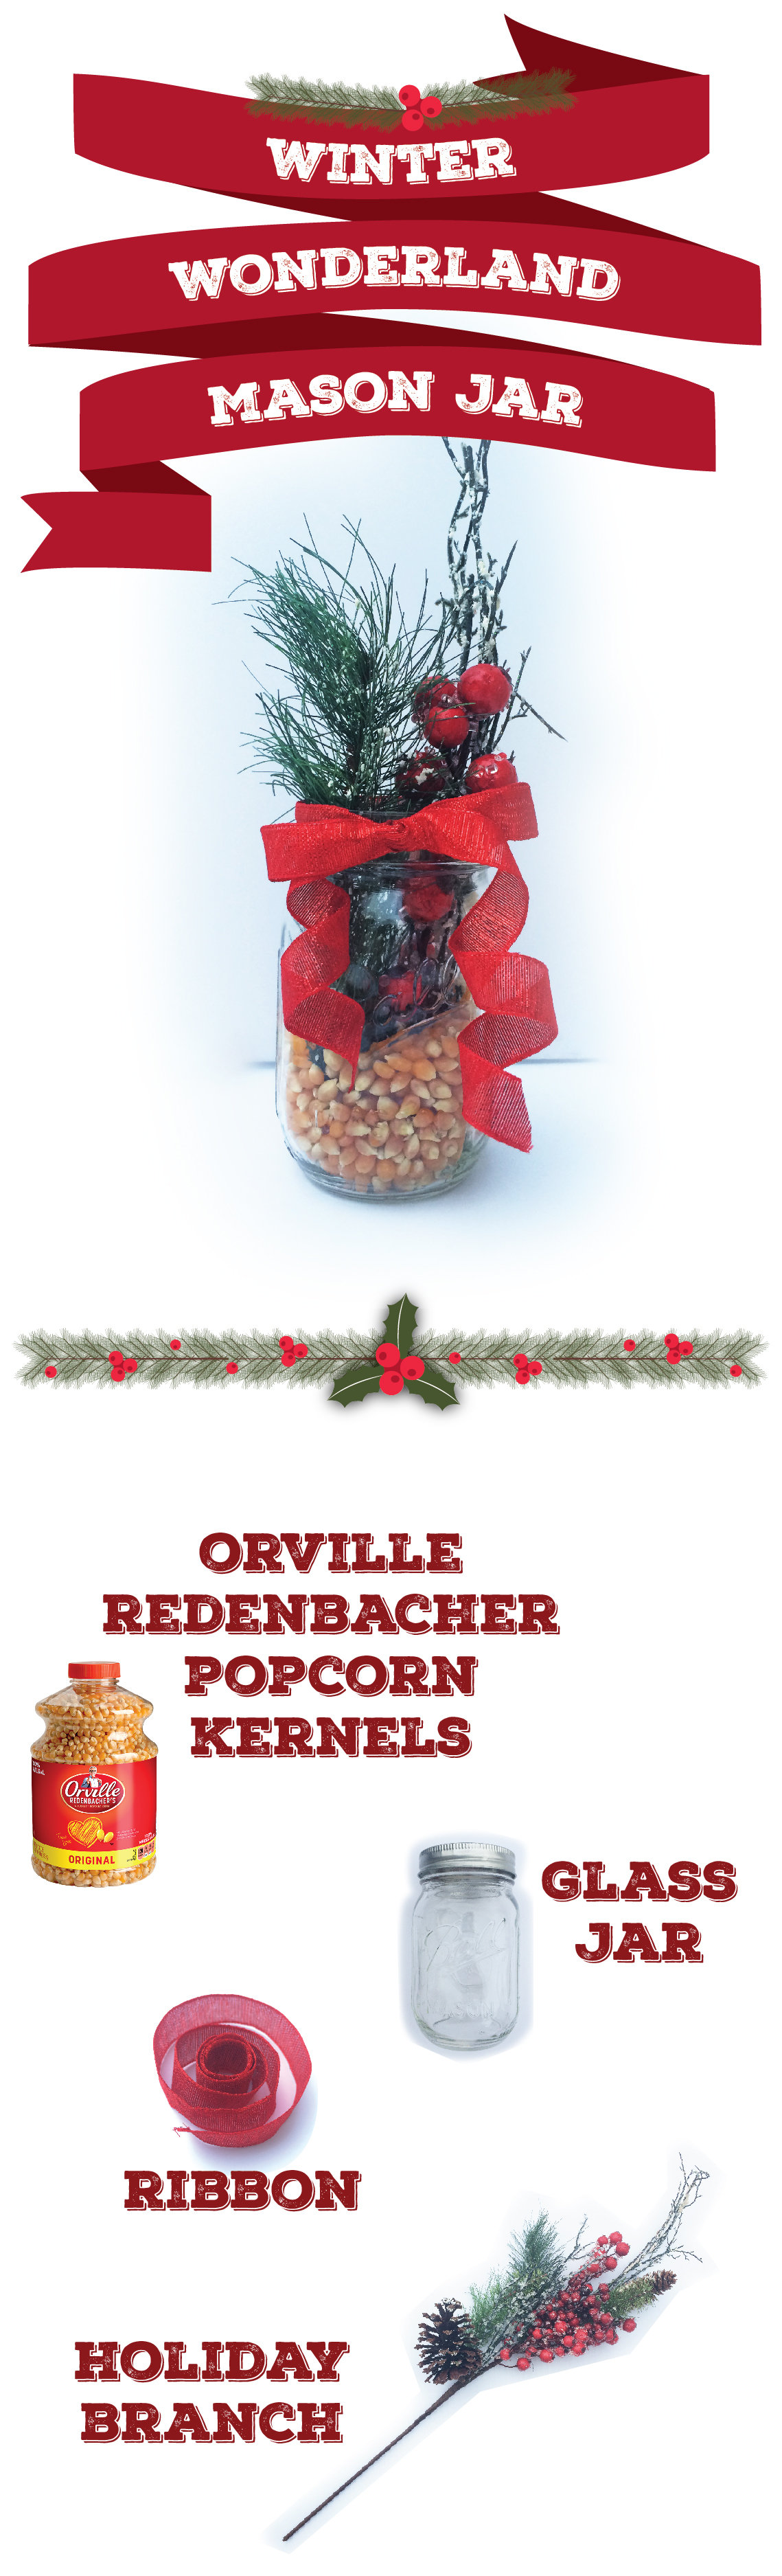 6 holiday decorations that really pop | easy DIY popcorn decorations | can't go wrong with ribbon, candles & mason jars!